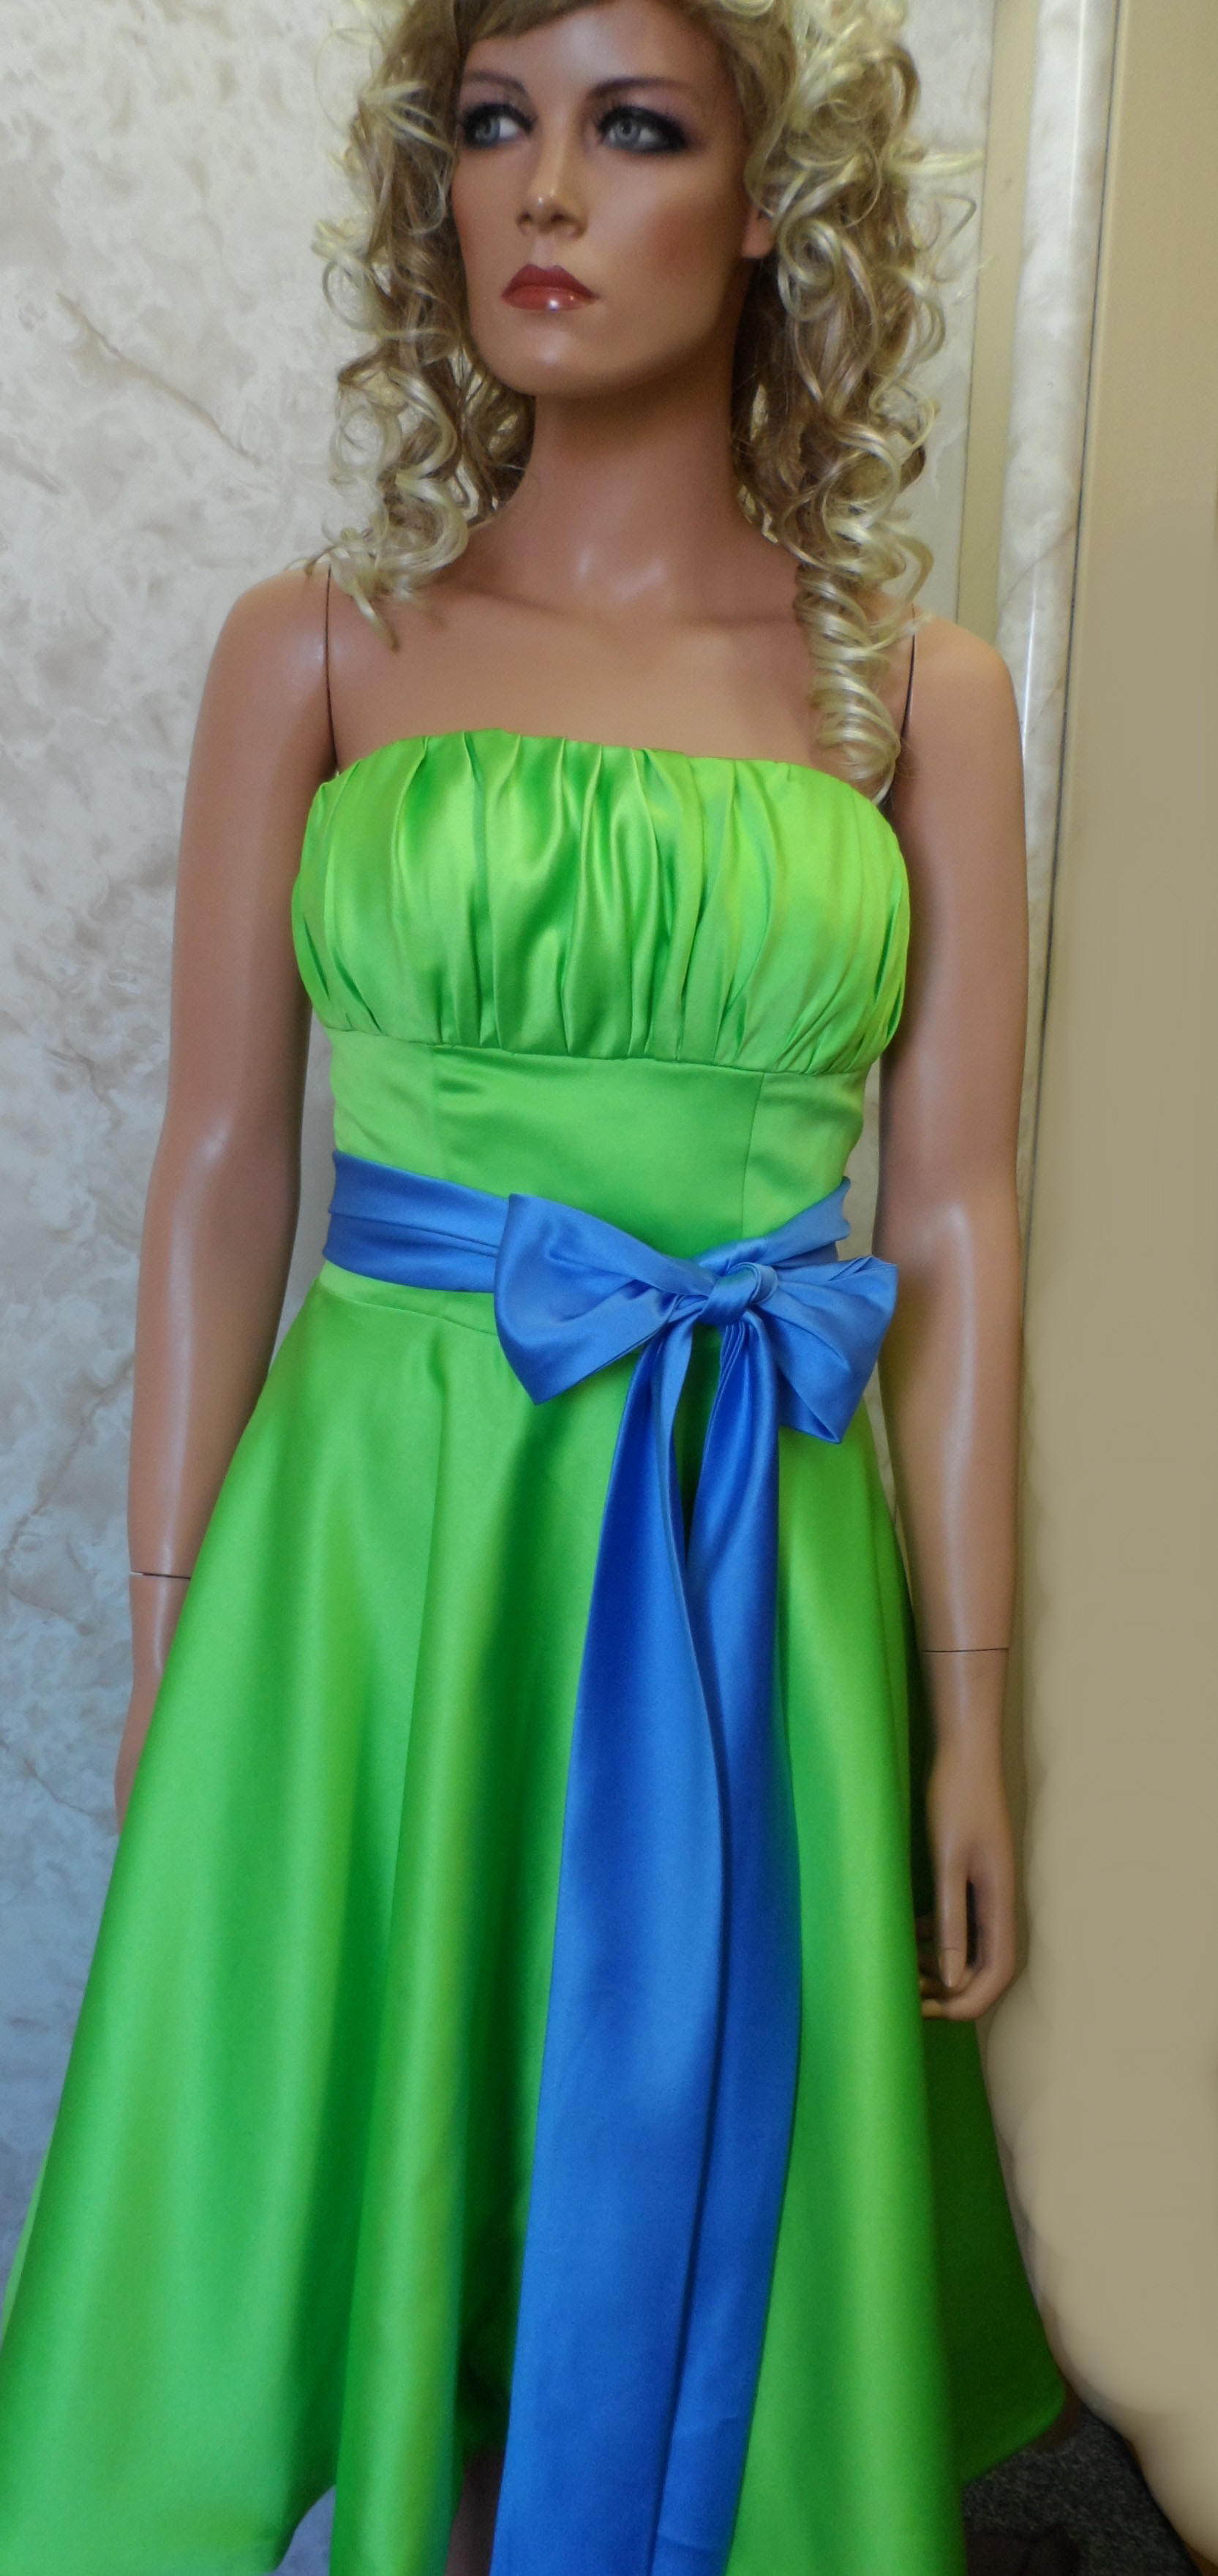 Lime green strapless dress with blue sash